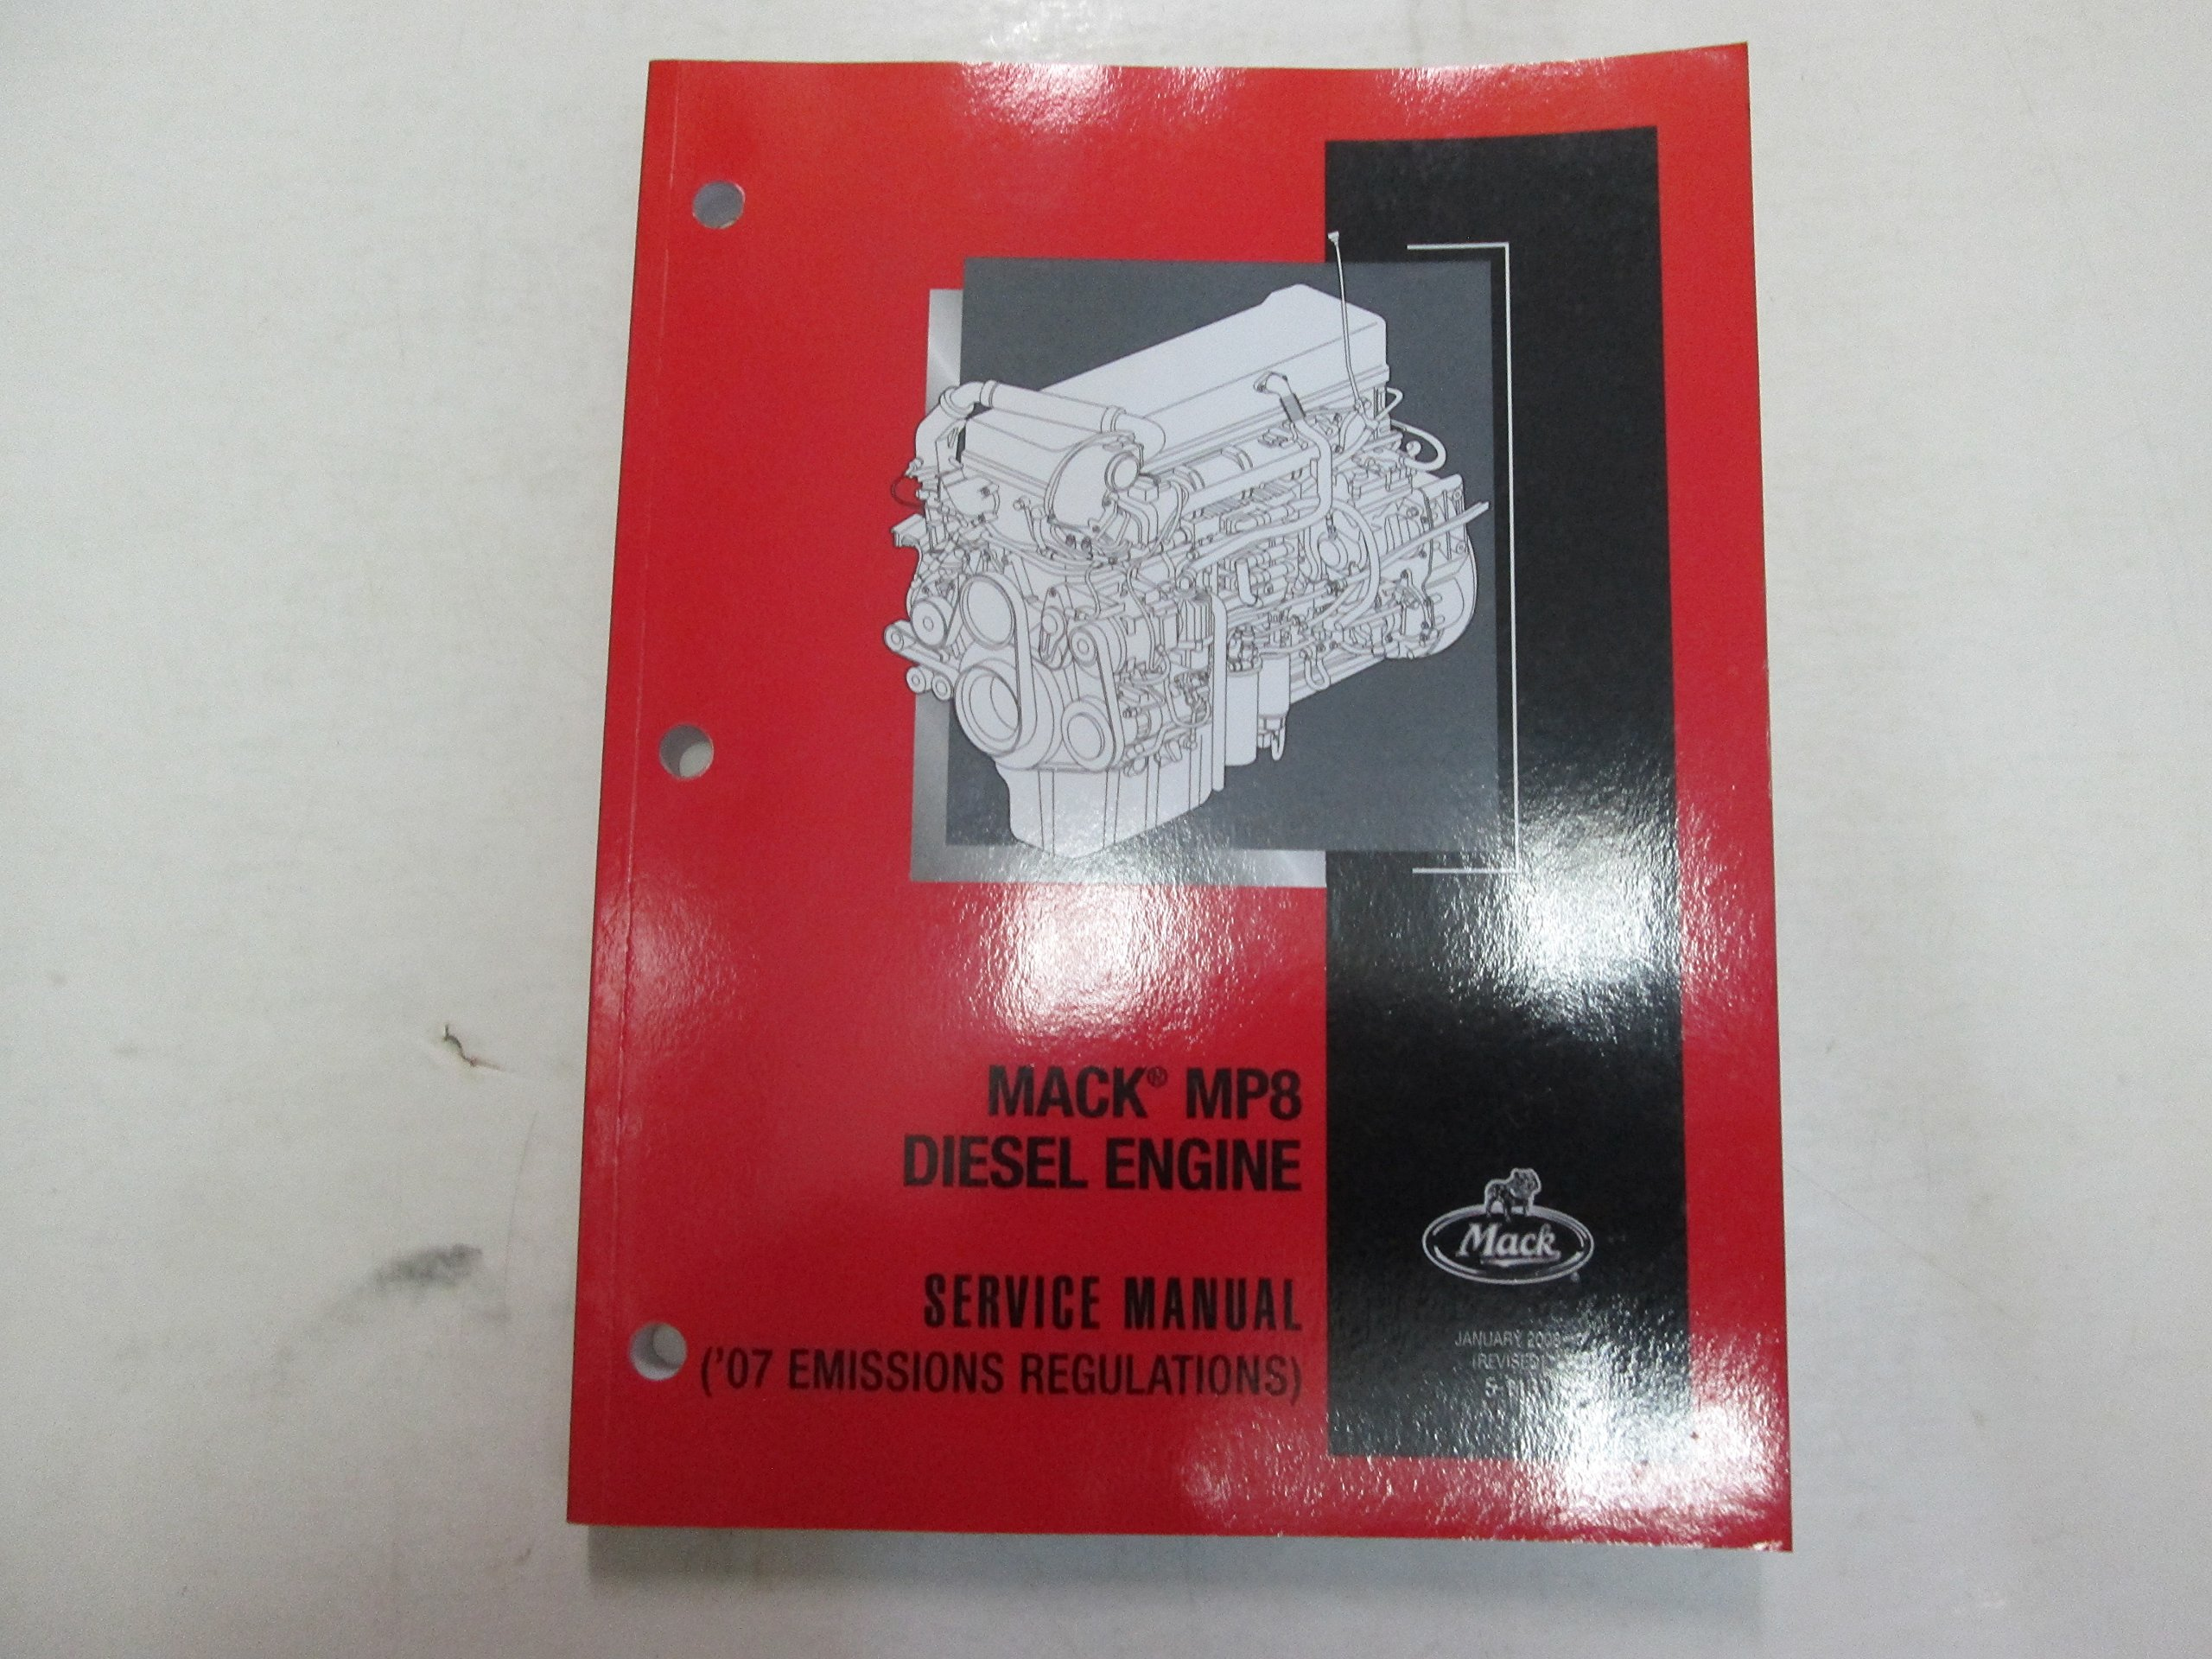 mp8 mack engine service manual